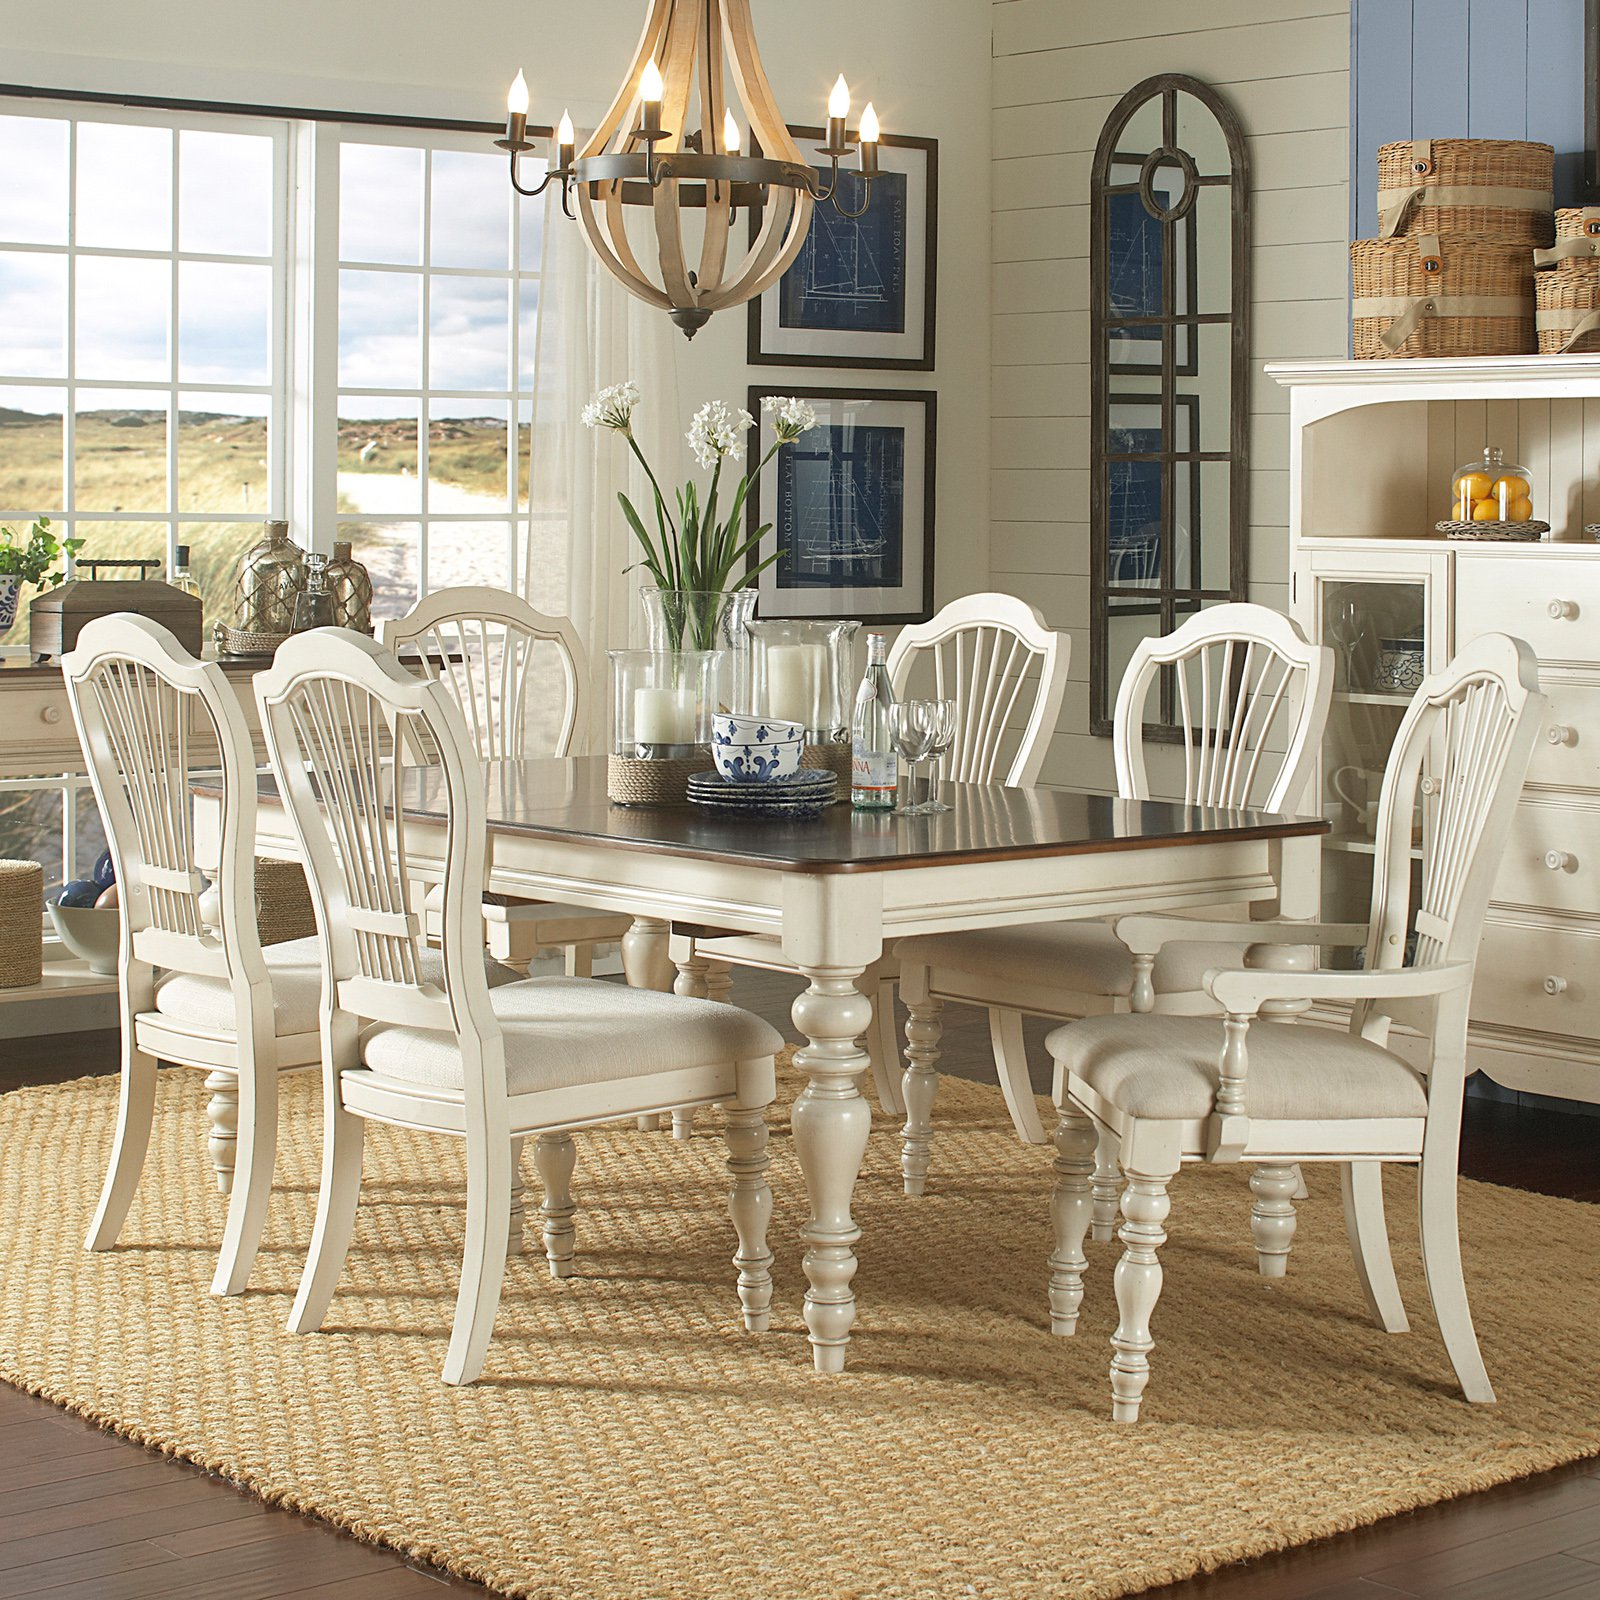 Superior Hillsdale Furniture Pine Island 7 Piece Dining Set, With Wheat Back Chairs